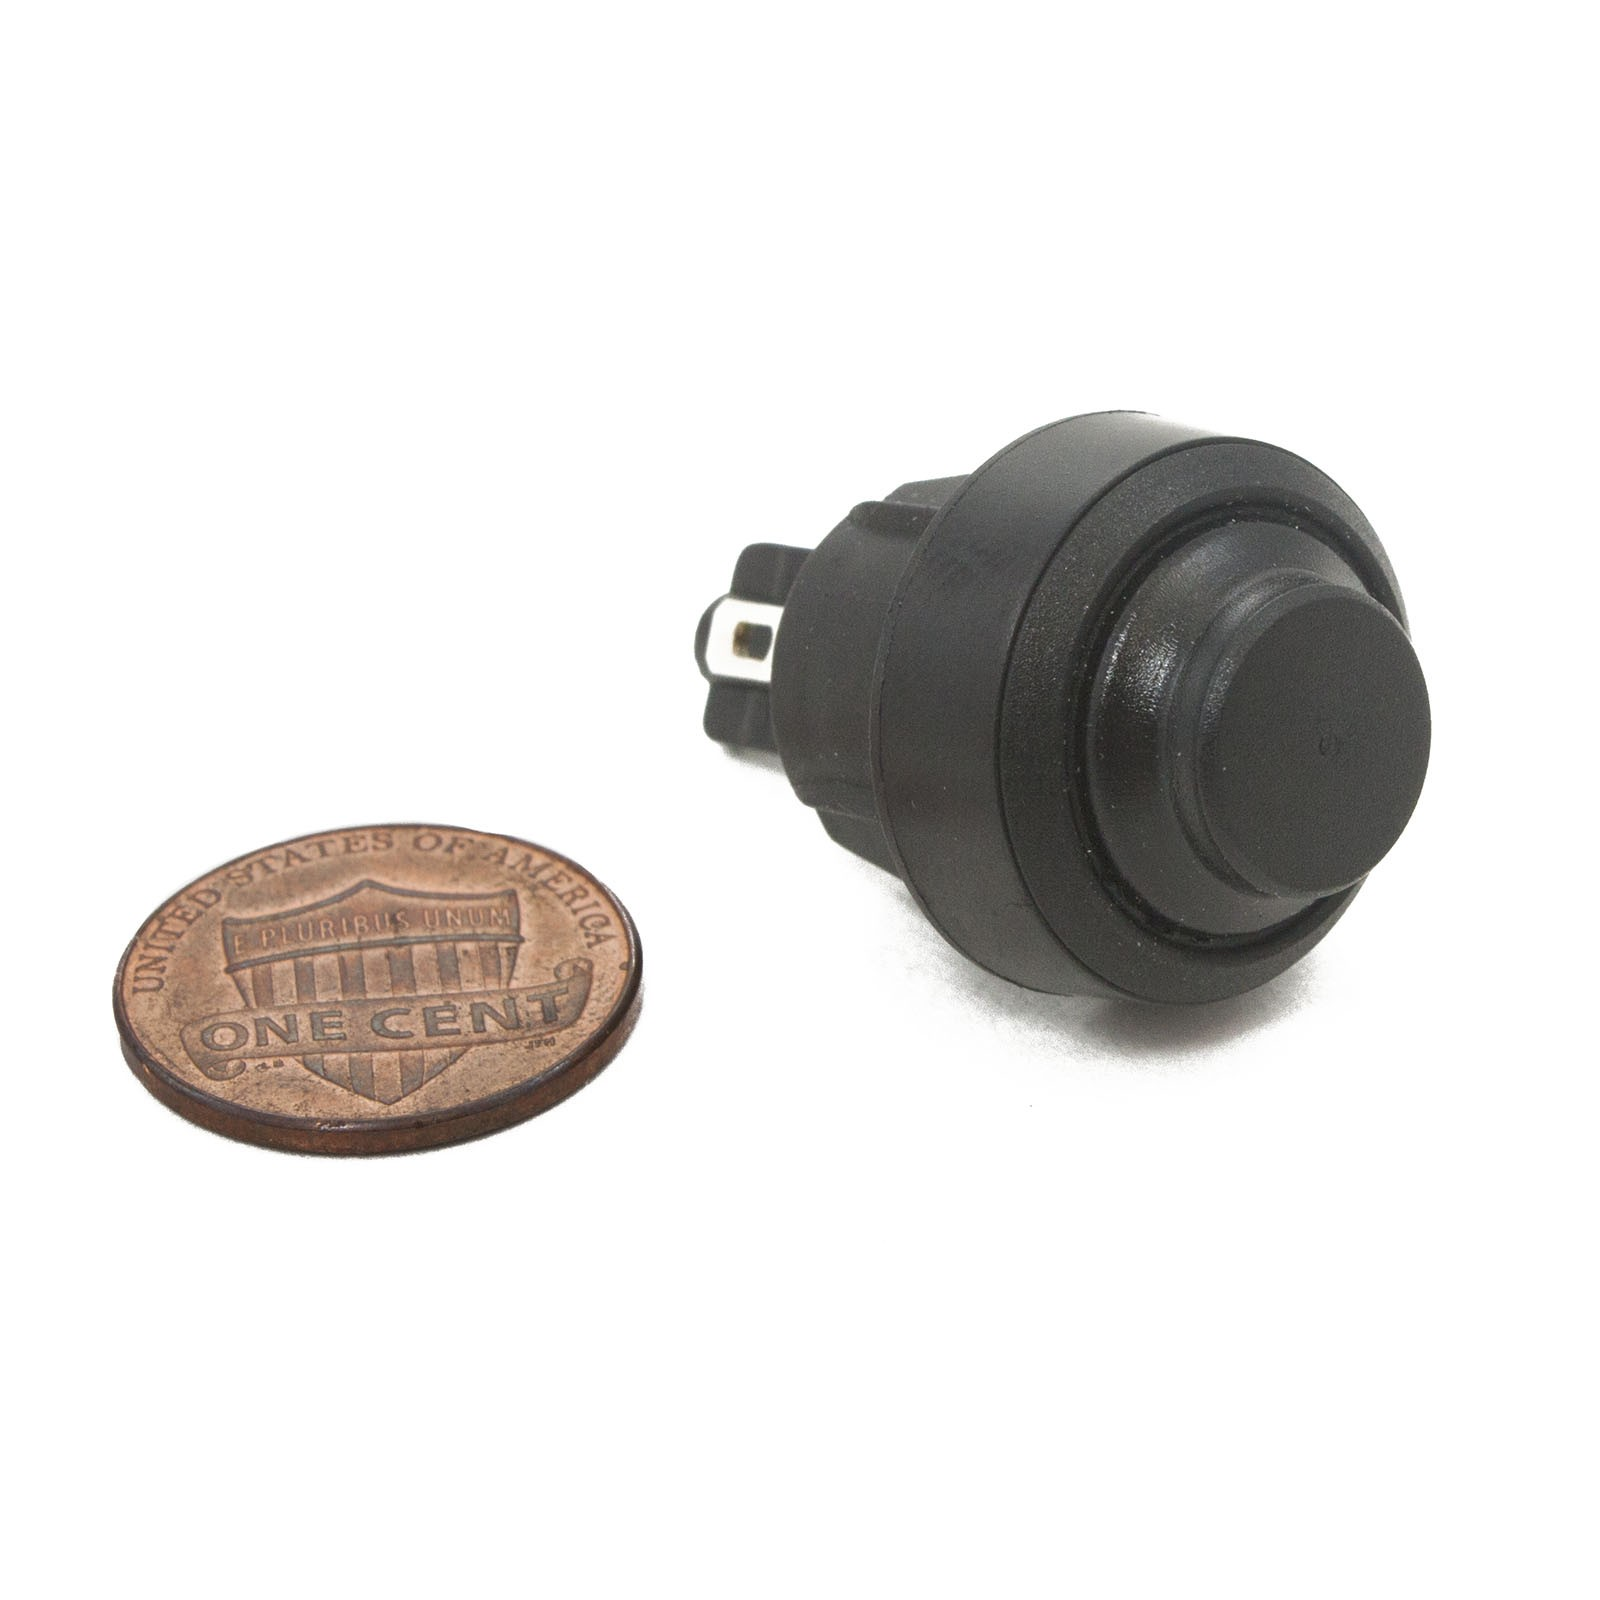 hight resolution of control box push button switch penny shown for scale